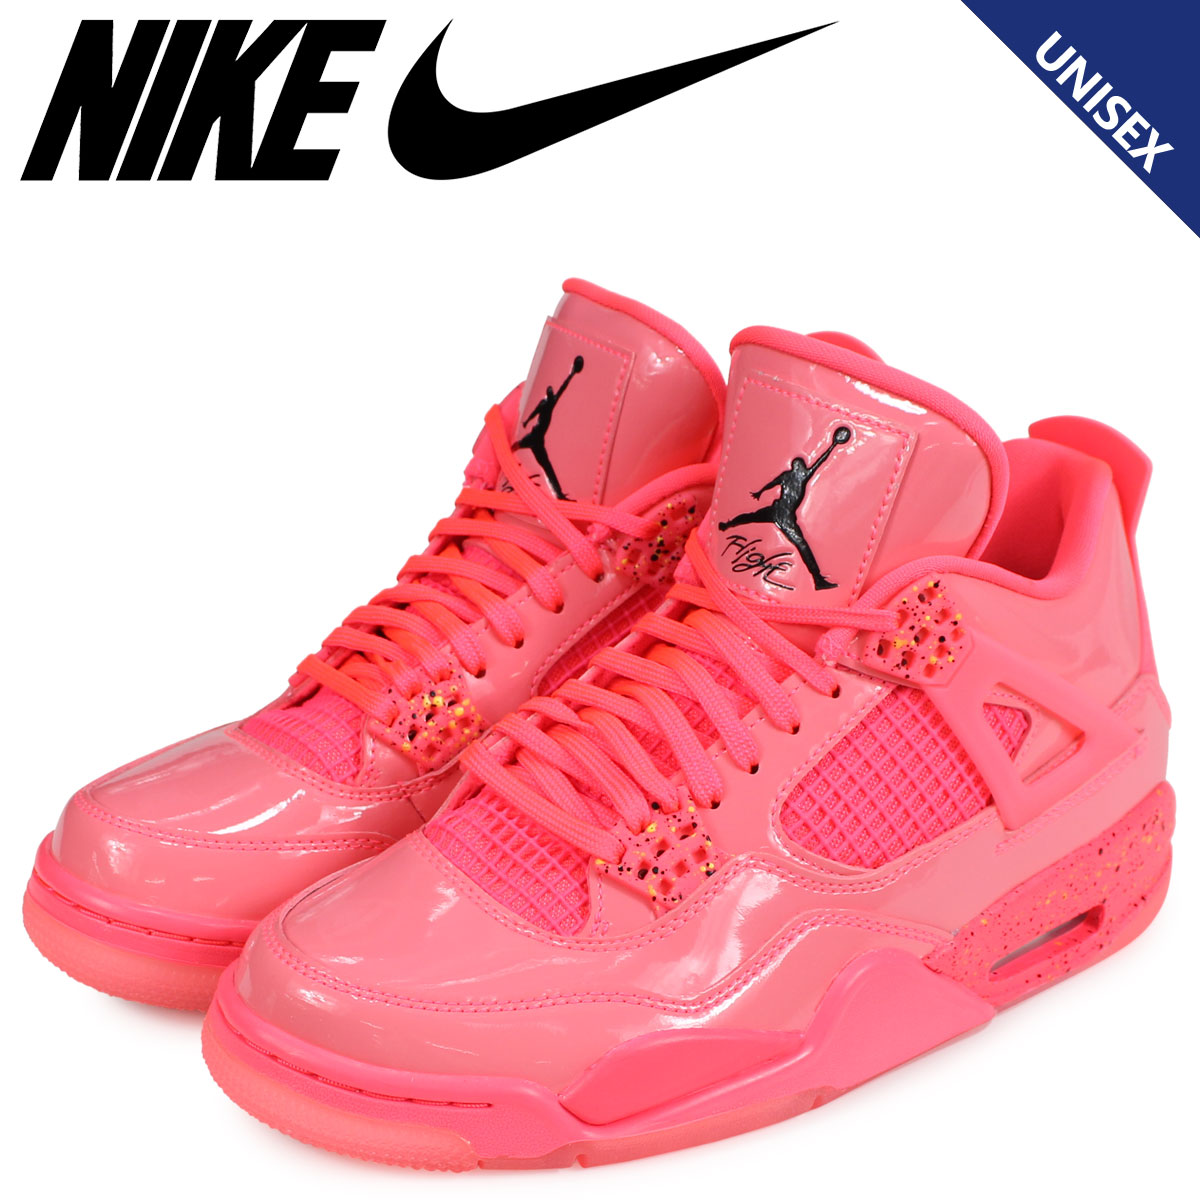 NIKE Nike Air Jordan 4 nostalgic sneakers Lady\u0027s men WMNS AIR JORDAN 4  RETRO NRG pink AQ9128,600